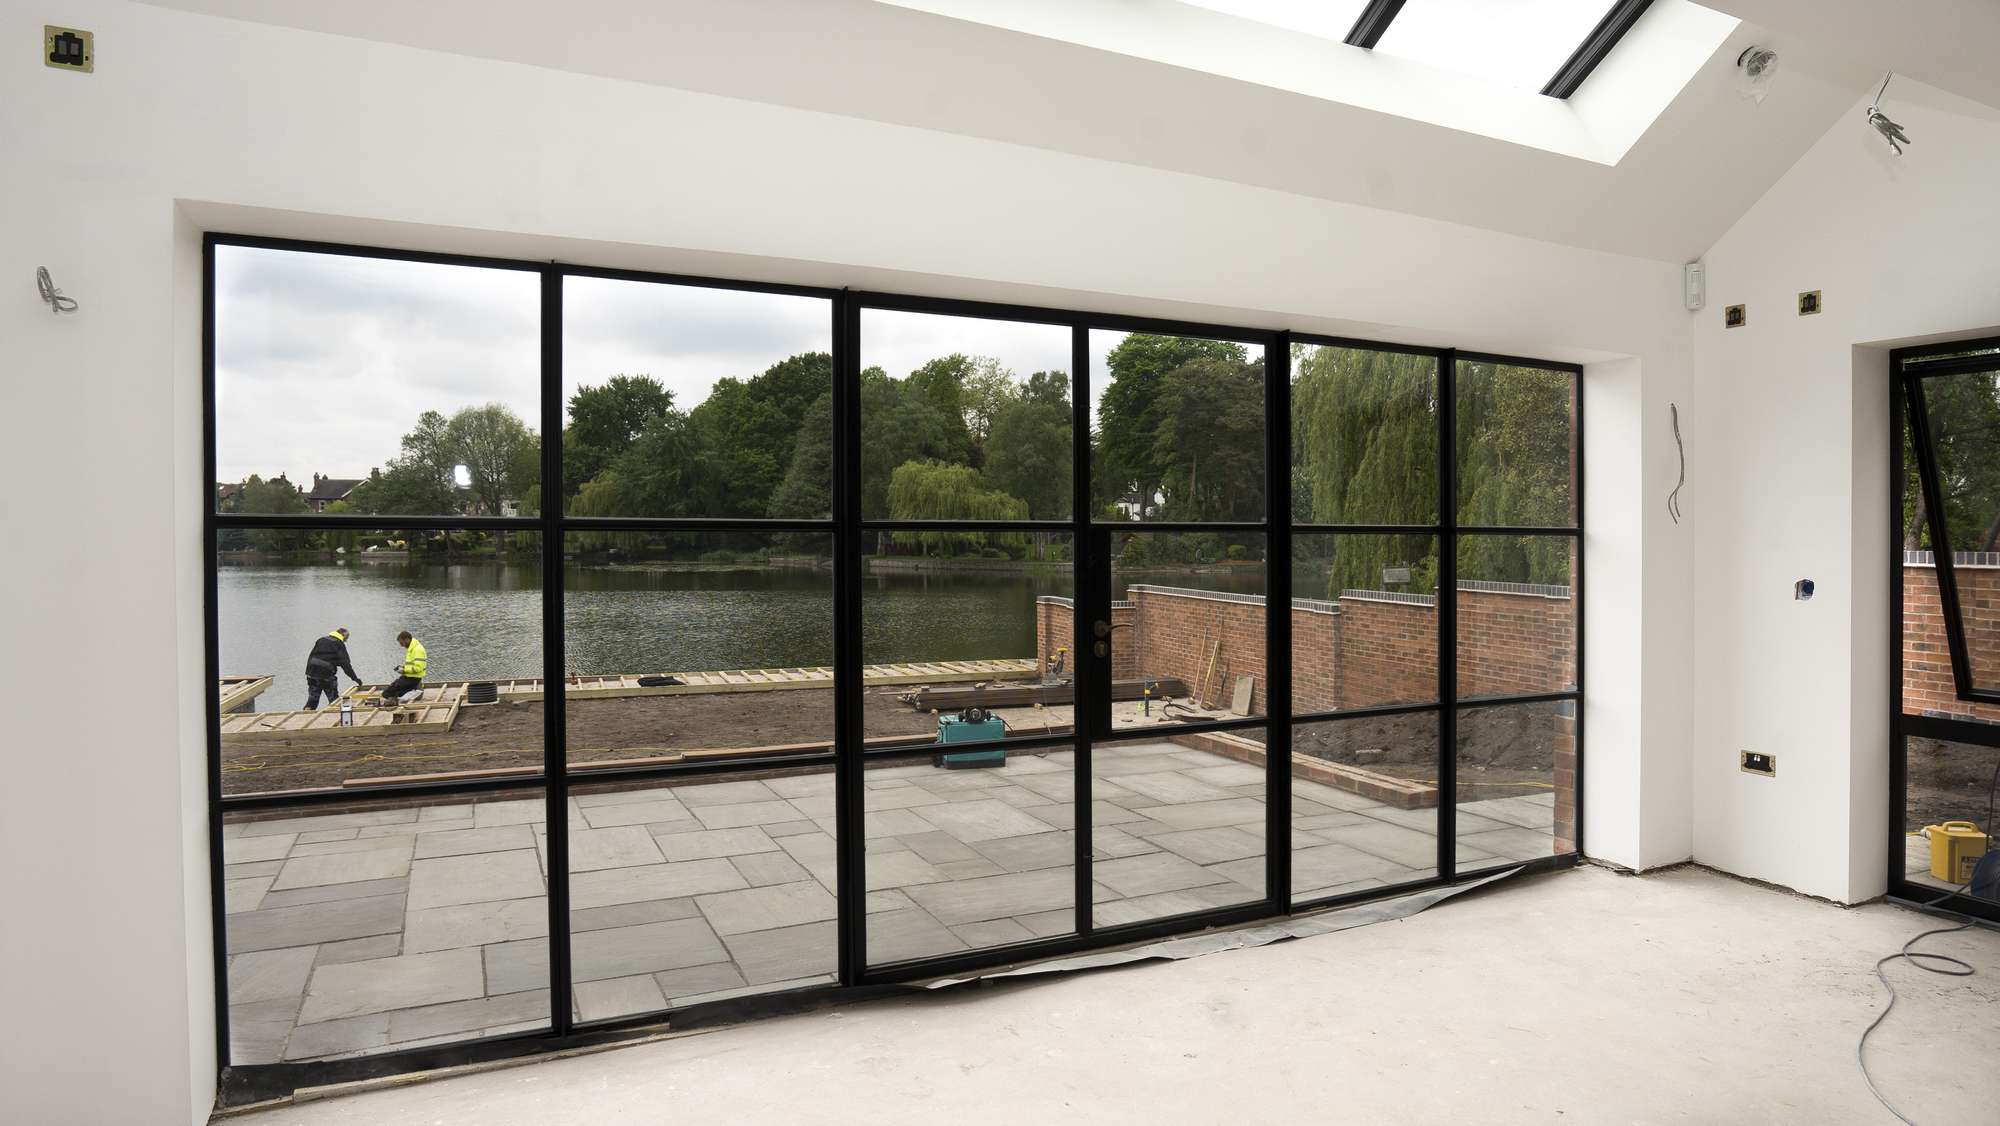 crittall doors new stunning crittall door screen fitted. Black Bedroom Furniture Sets. Home Design Ideas